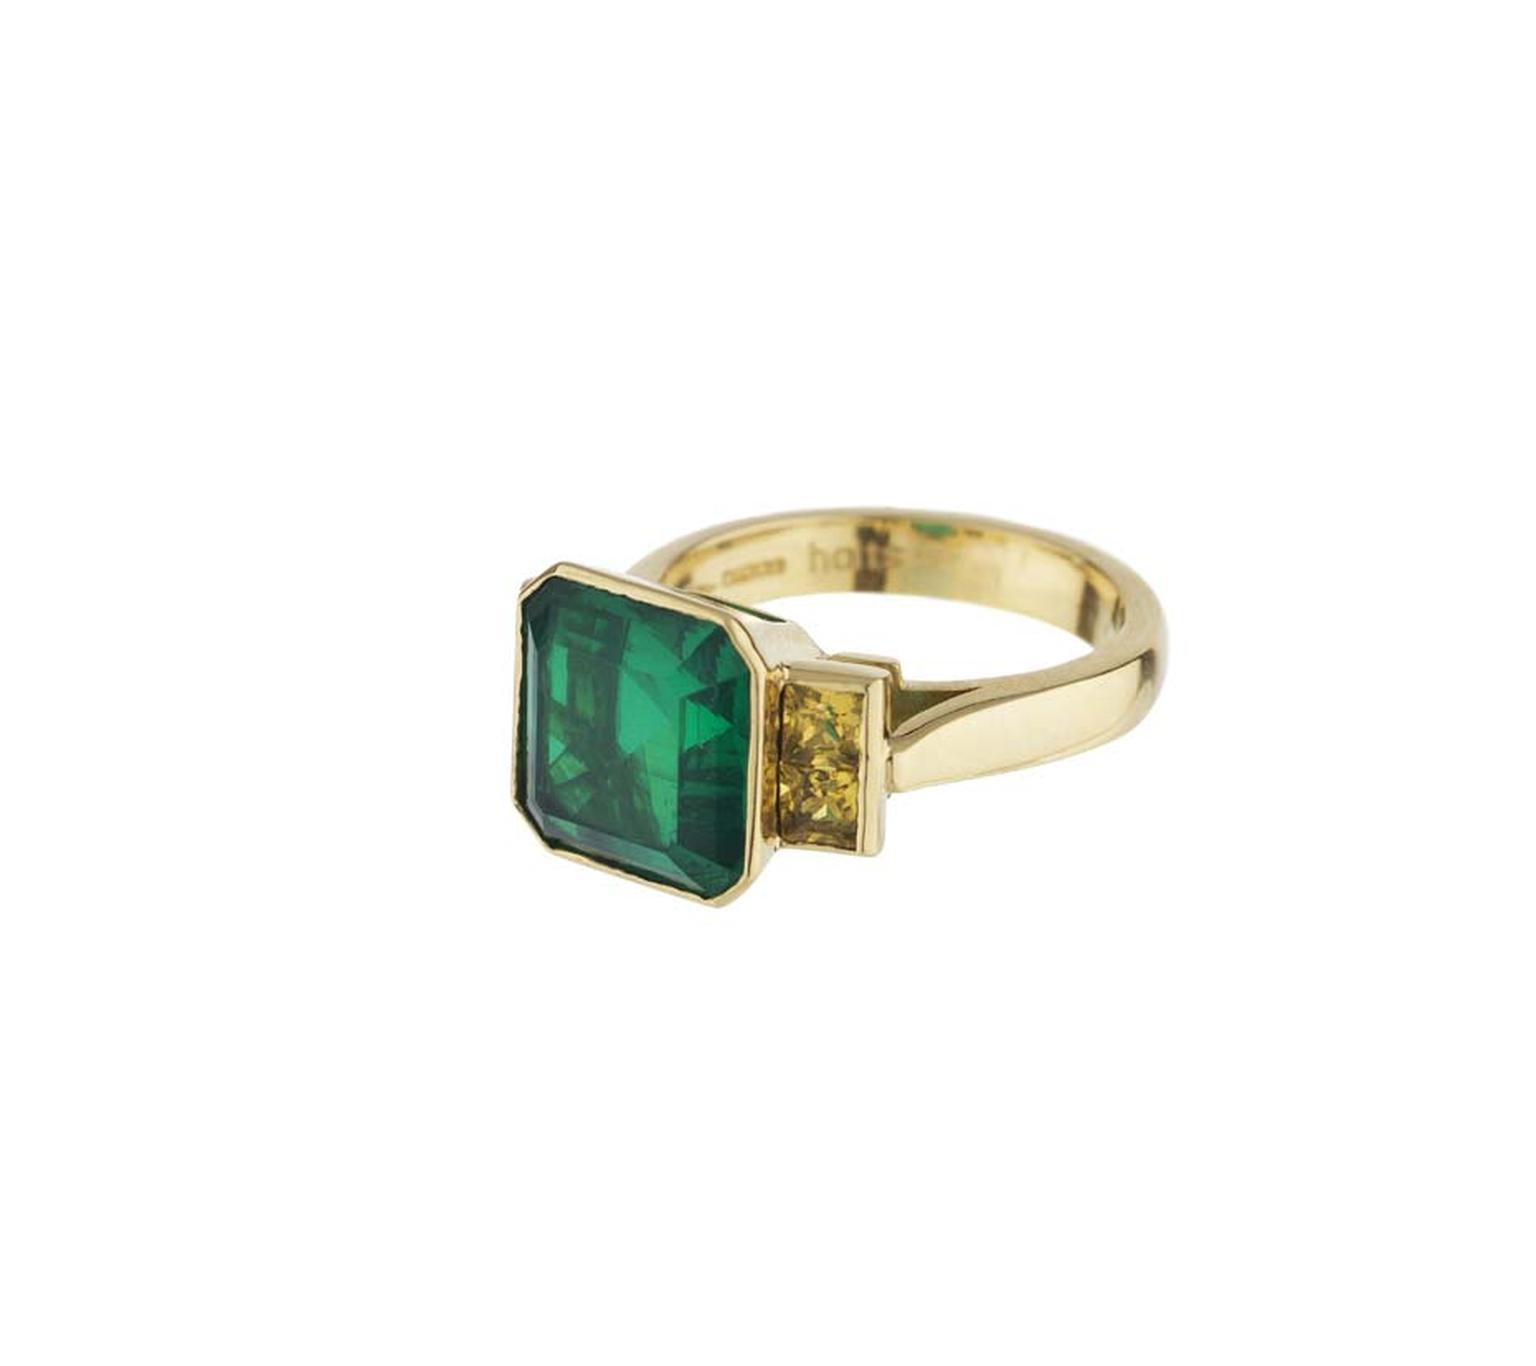 Holts London collection yellow gold Strand ring featuring a doublet centre emerald with yellow sapphire set shoulders.